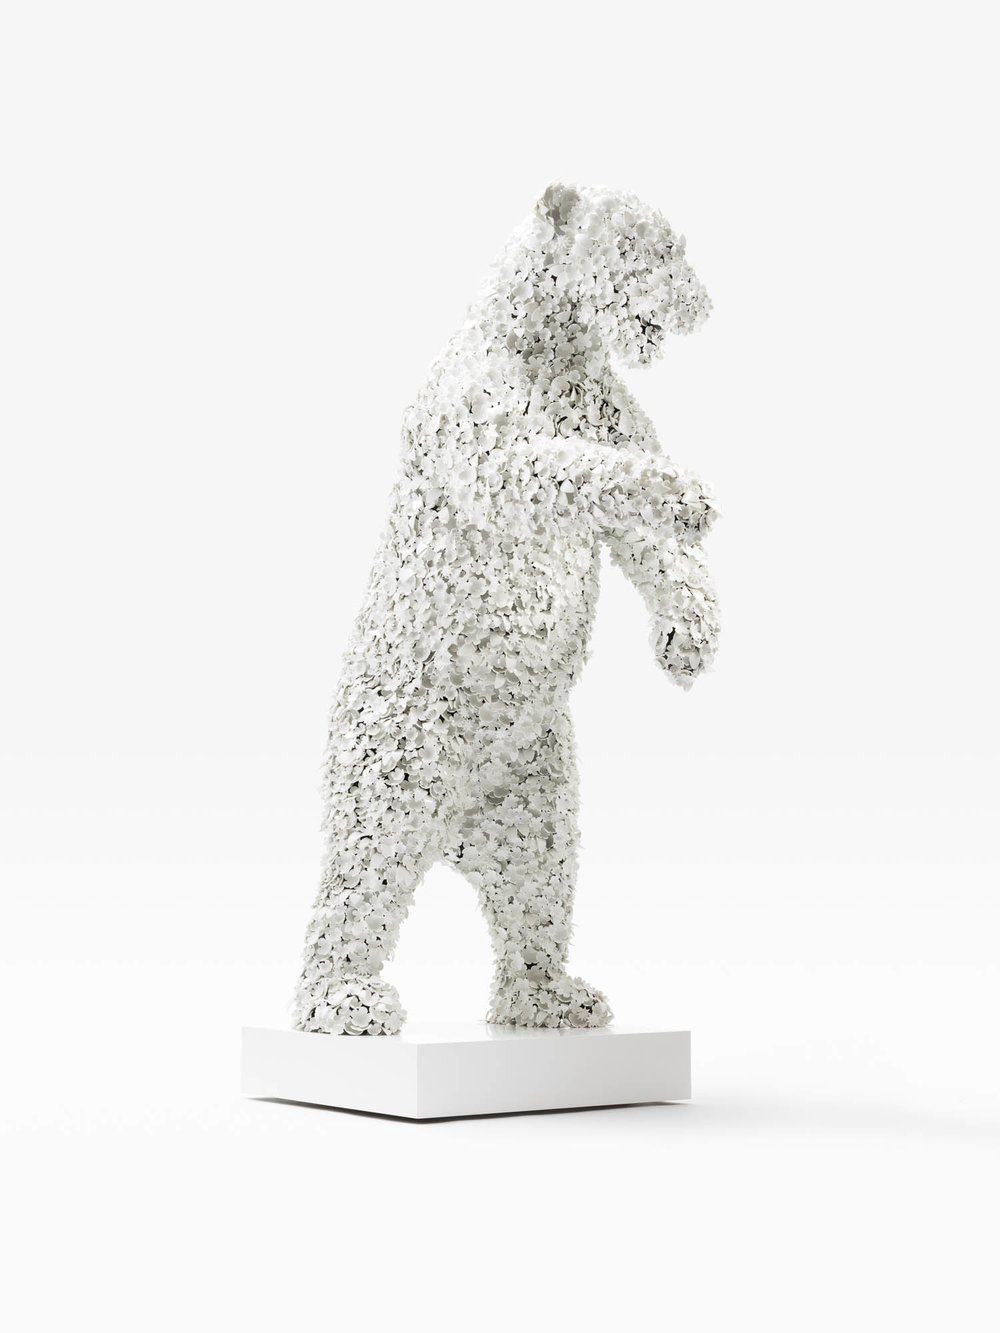 BB Sculpture 'Polar Bear'.jpg